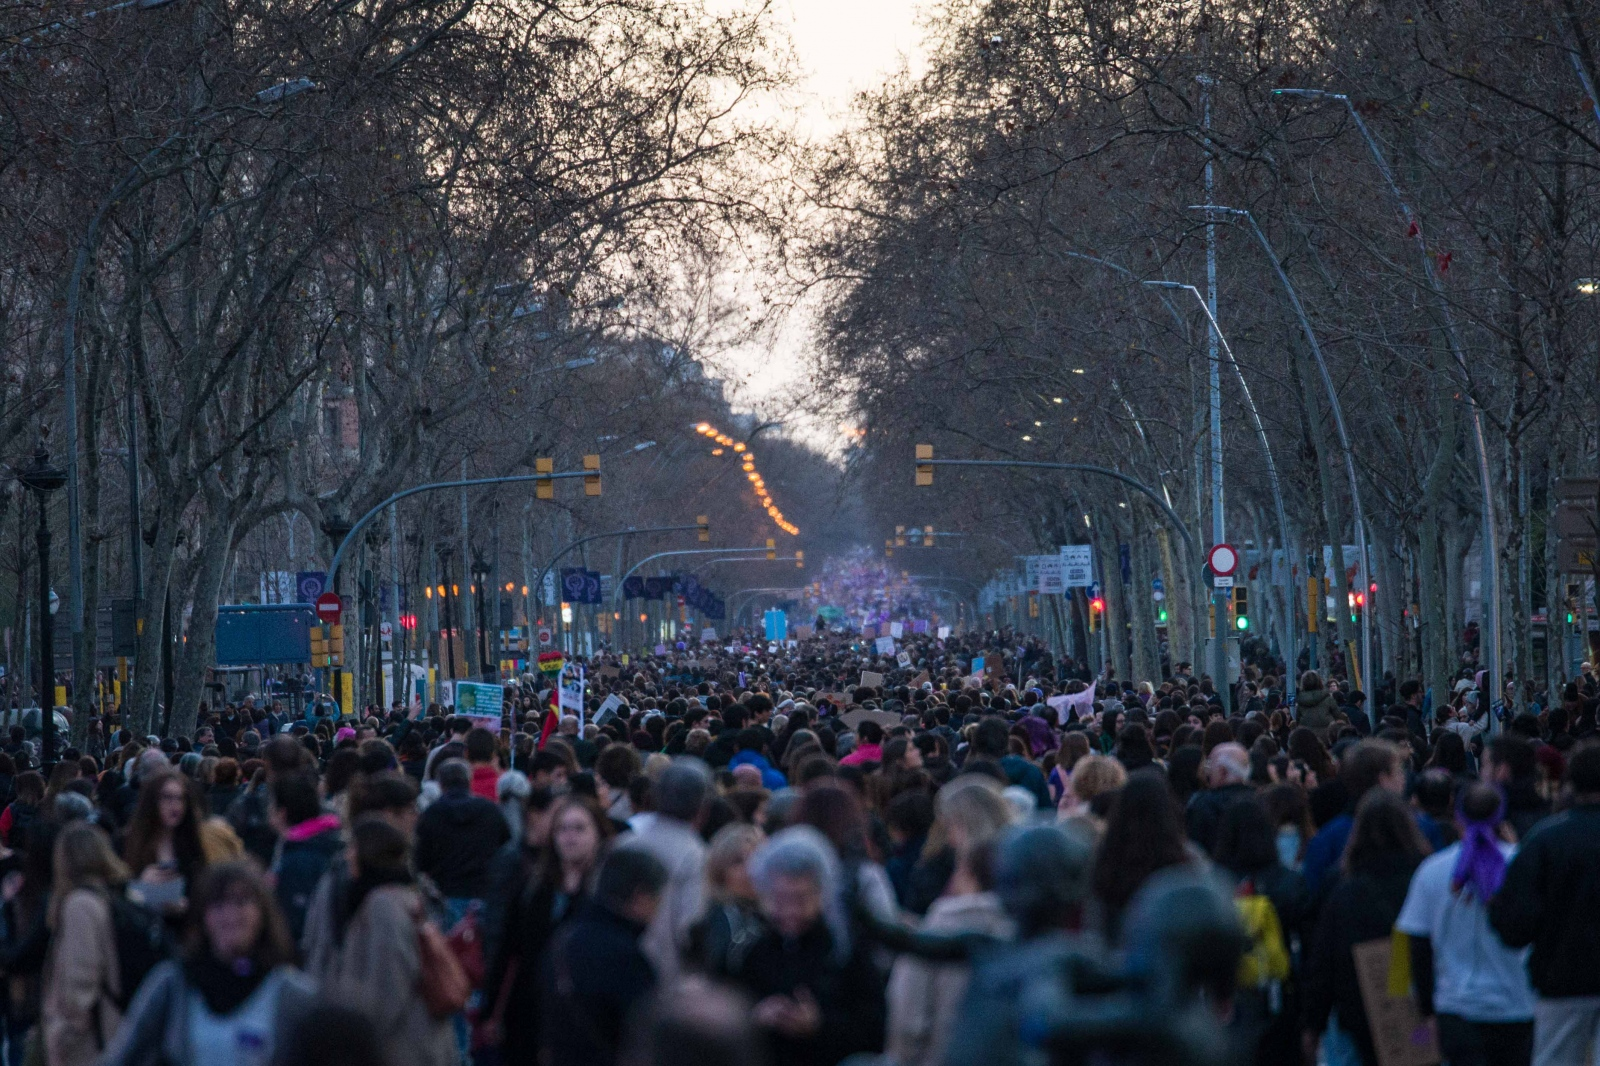 Around 200.000 people filled Barcelona's Gran Via on the evening of International Women's Day. The day was also a strike day for female workers in Spain: nationwide, around 6 million women participated in the strike. Barcelona, March 8, 2019.